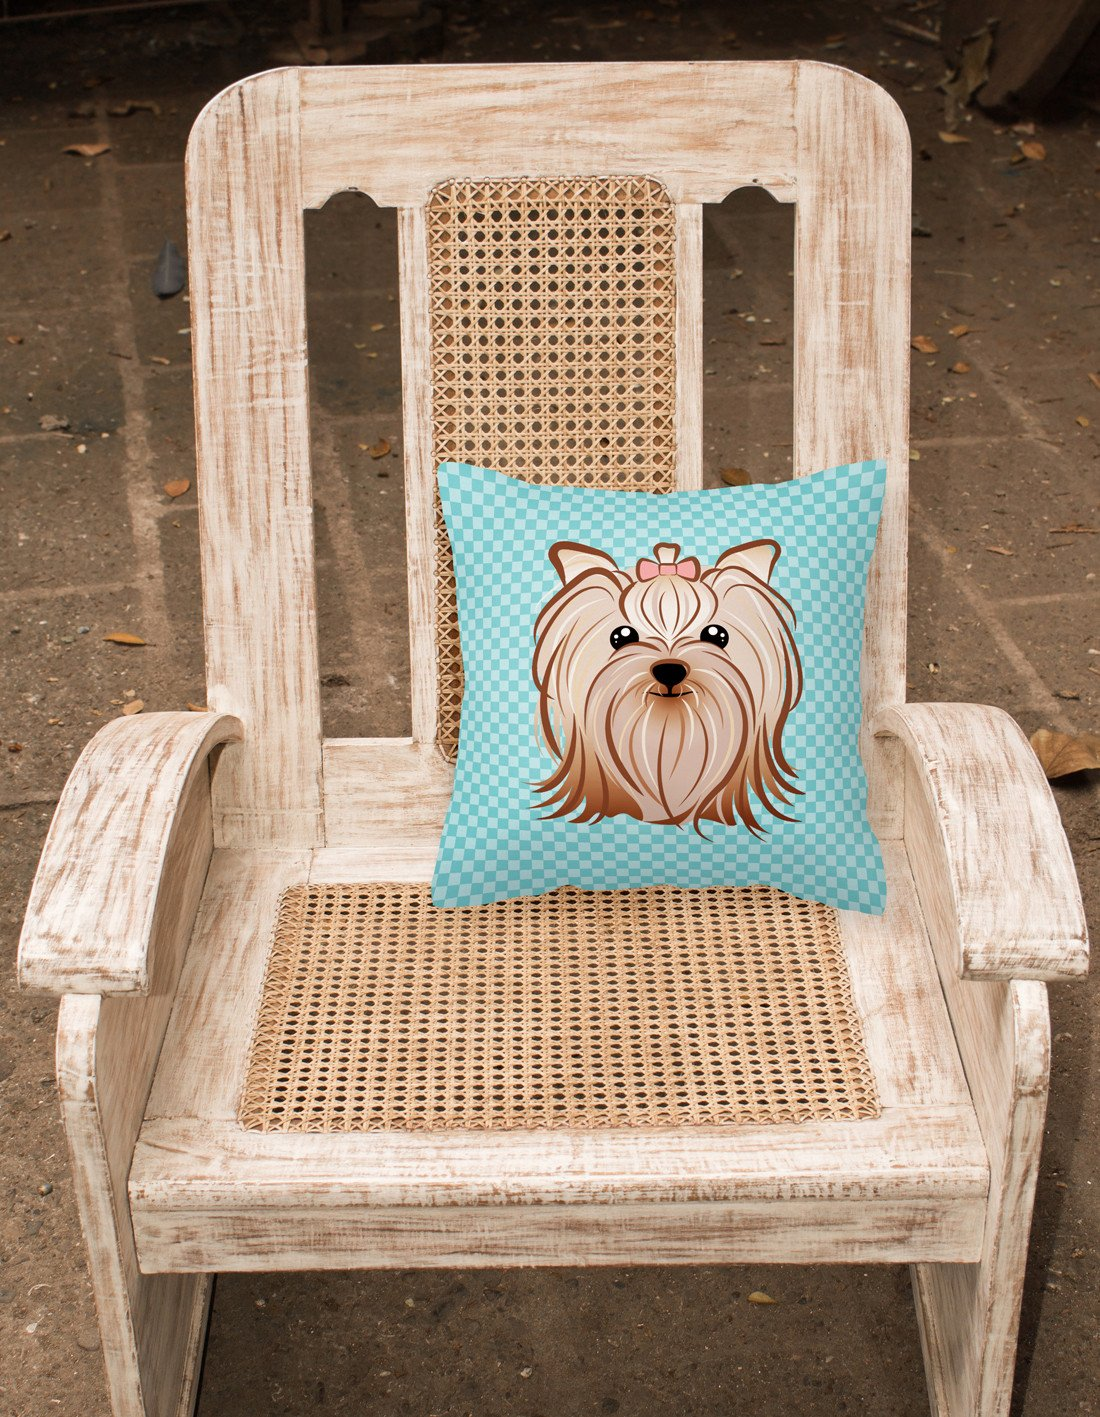 Checkerboard Blue Yorkie Yorkshire Terrier Canvas Fabric Decorative Pillow BB1142PW1414 - the-store.com